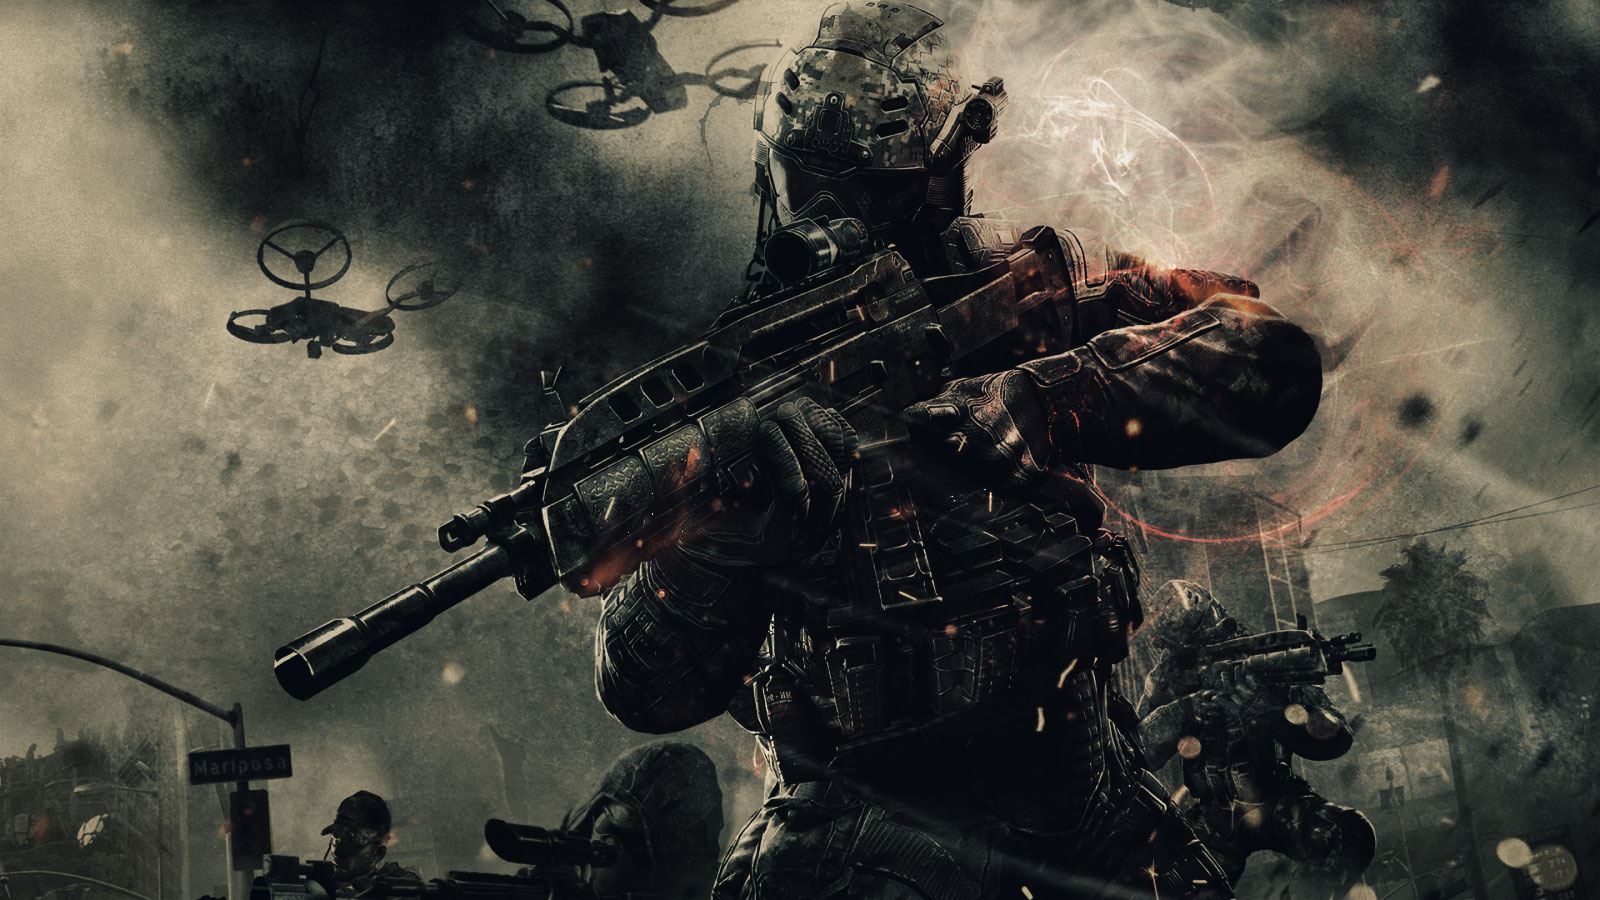 Games Wallpapers   Call of Duty Black Ops 2 1600x900 wallpaper 1600x900